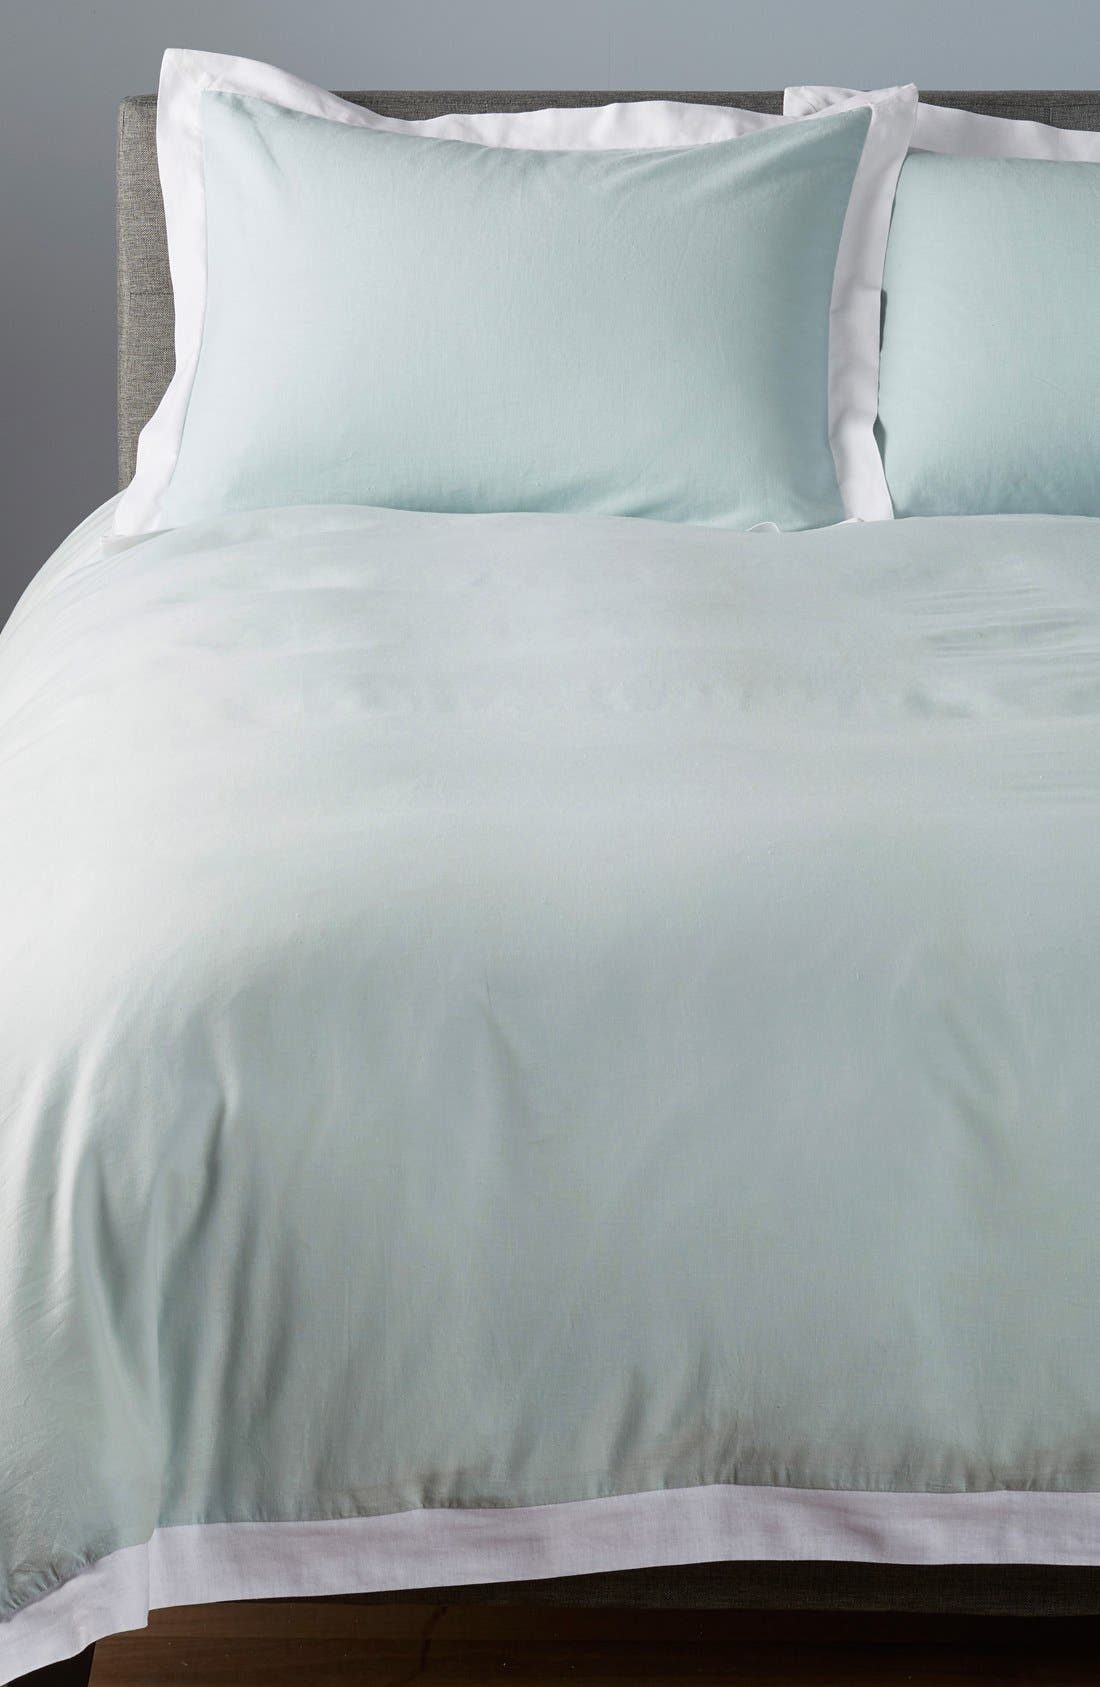 Main Image - Levtex 'Spa' Washed Linen Duvet Cover